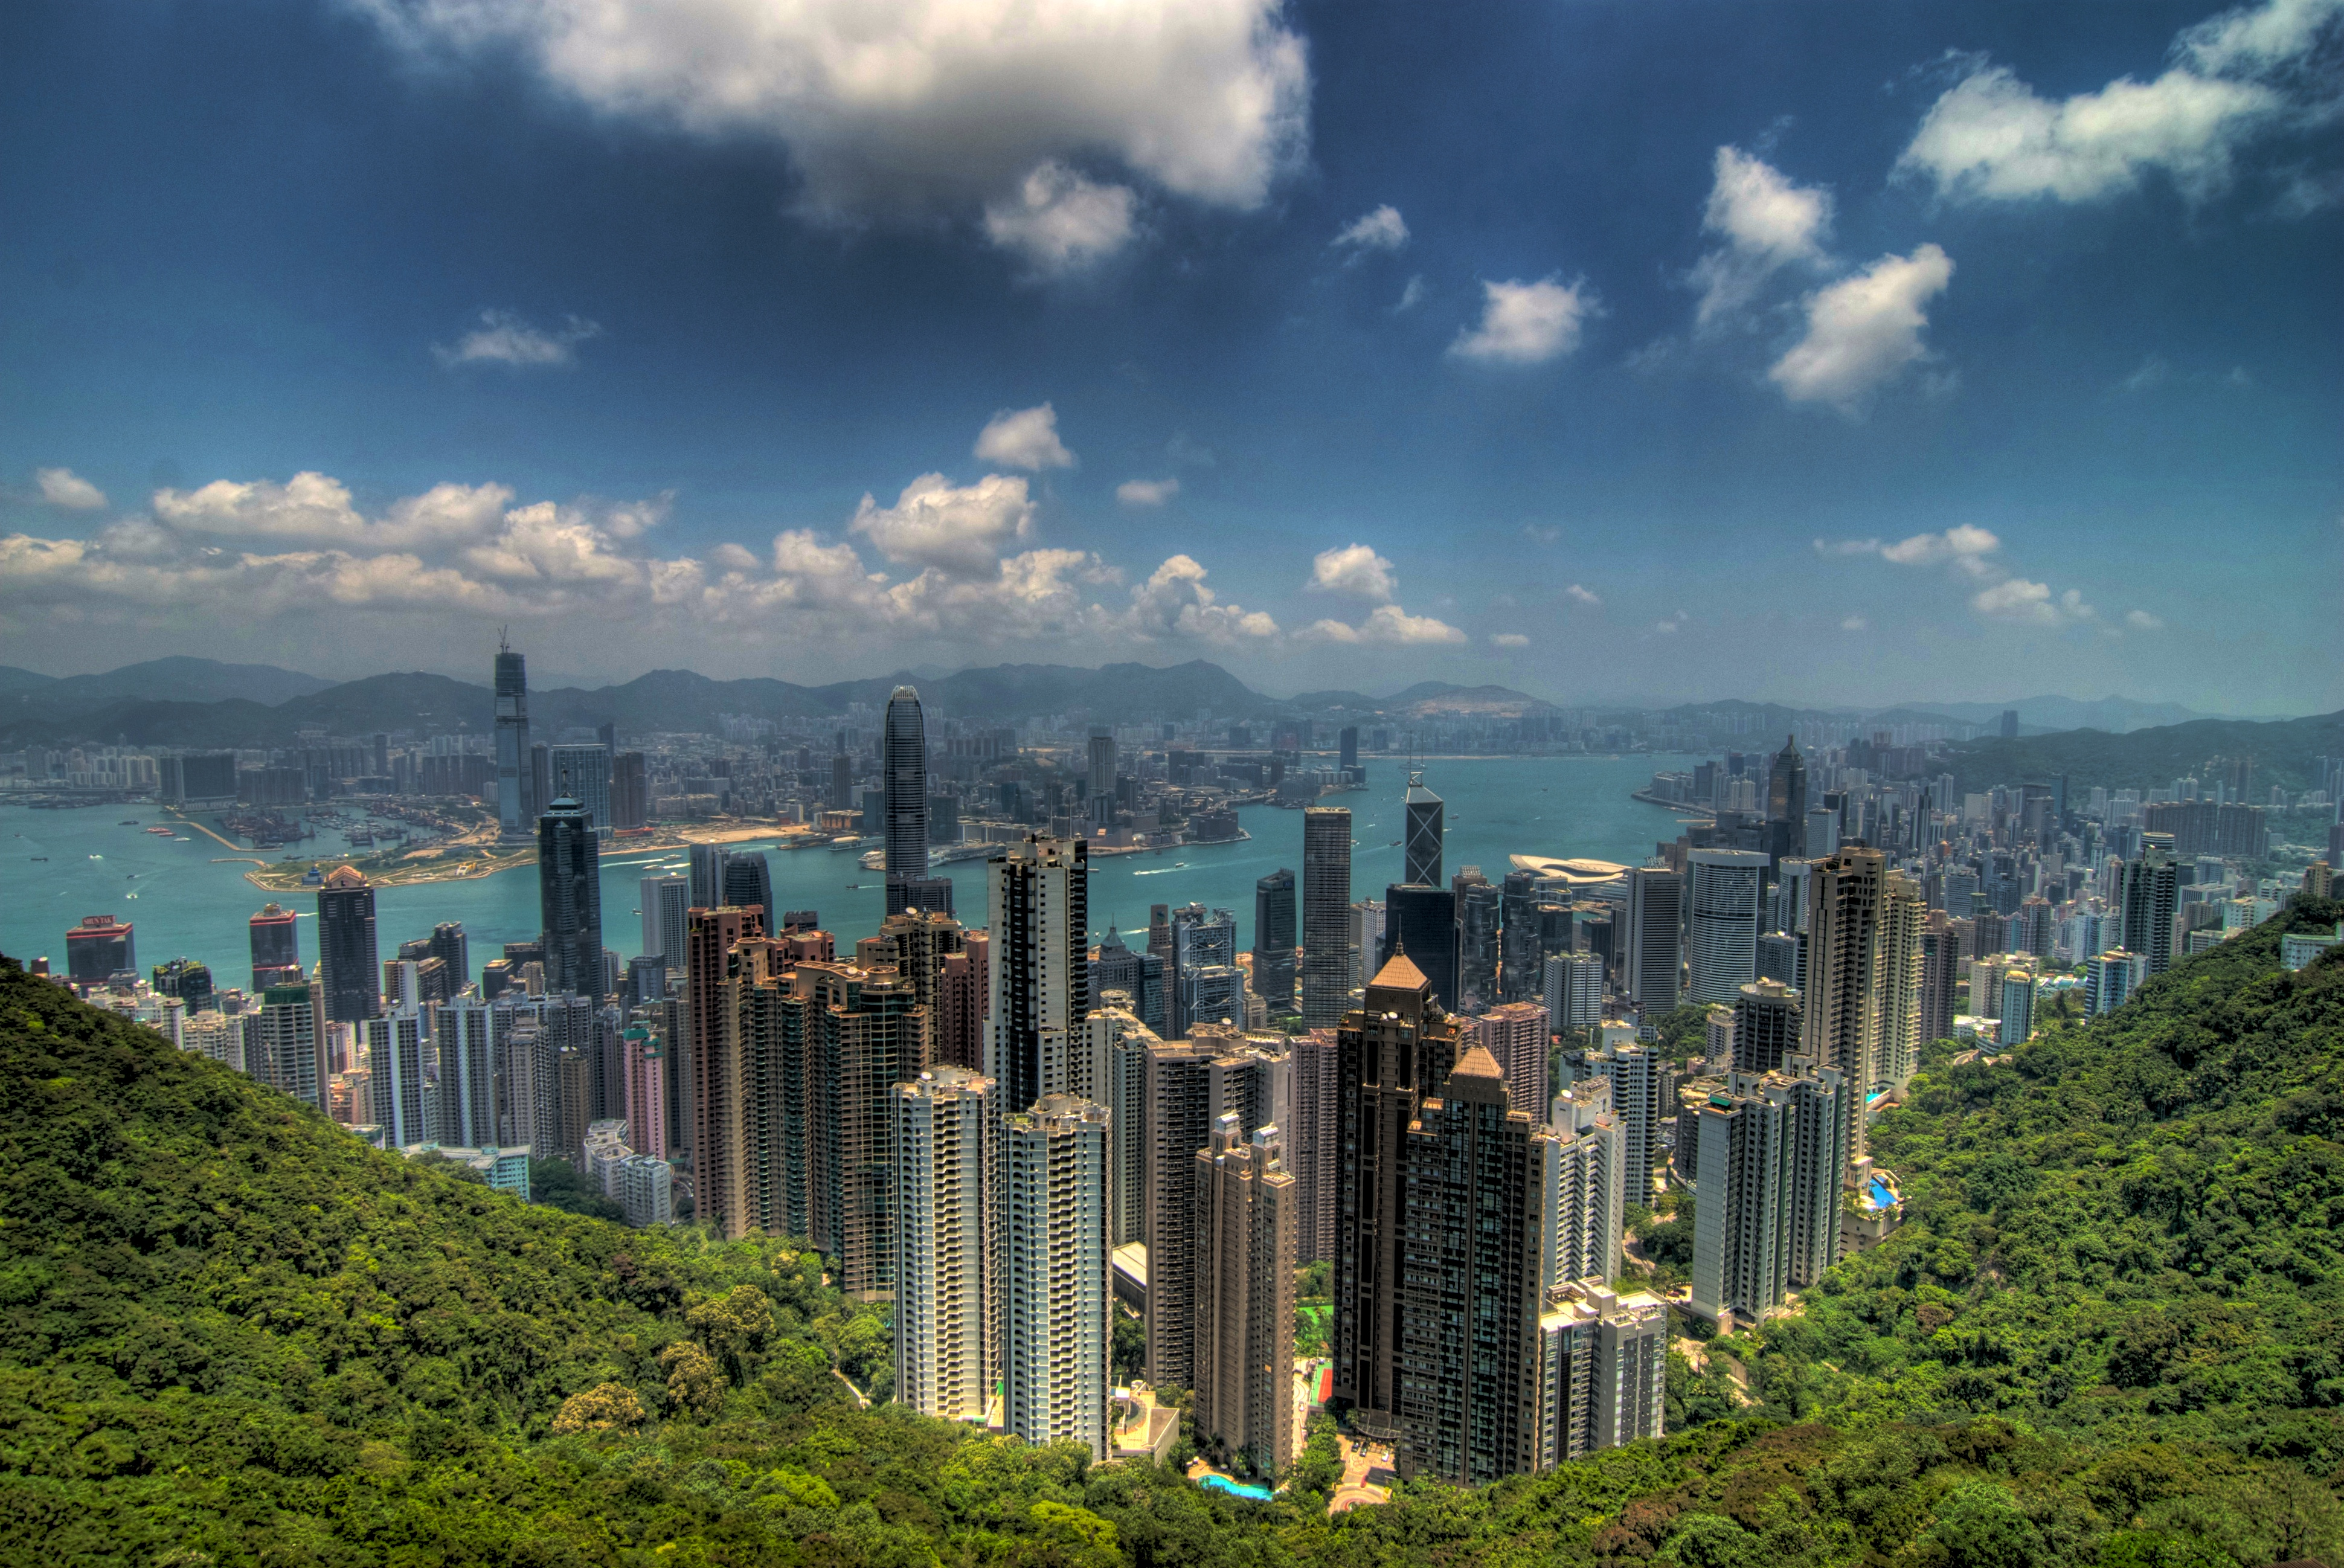 The view of Hong Kong from the top of Victoria Peak.